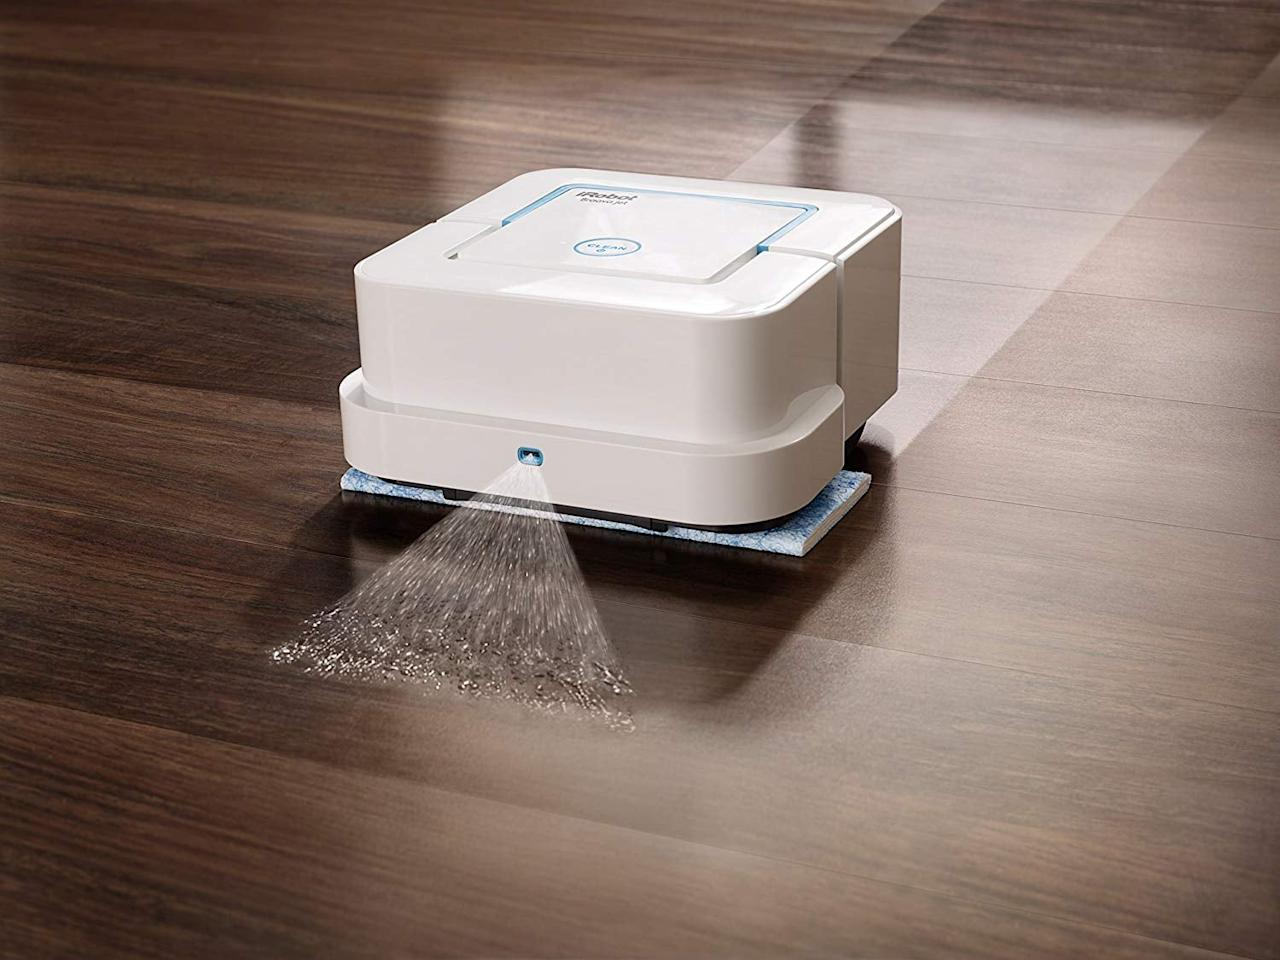 "<p>If you're a fan of the <a href=""https://www.popsugar.com/family/Amazon-Prime-Day-Roomba-Vacuum-Sale-2018-45058517"" class=""ga-track"" data-ga-category=""Related"" data-ga-label=""https://www.popsugar.com/moms/Amazon-Prime-Day-Roomba-Vacuum-Sale-2018-45058517"" data-ga-action=""In-Line Links"">iRobot Vacuum</a>, then you'll want to give this <a href=""https://www.popsugar.com/buy/iRobot-Braava-Jet-240-Robot-Mop-402779?p_name=iRobot%20Braava%20Jet%20240%20Robot%20Mop&retailer=amazon.com&pid=402779&price=170&evar1=savvy%3Auk&evar9=45665315&evar98=https%3A%2F%2Fwww.popsugar.com%2Fsmart-living%2Fphoto-gallery%2F45665315%2Fimage%2F45665350%2FiRobot-Braava-Jet-240-Robot-Mop&list1=shopping%2Cgifts%2Camazon%2Cgadgets%2Cgift%20guide%2Ctech%20shopping%2Chome%20shopping&prop13=api&pdata=1"" rel=""nofollow"" data-shoppable-link=""1"" target=""_blank"" class=""ga-track"" data-ga-category=""Related"" data-ga-label=""https://www.amazon.com/iRobot-Braava-jet-240-Robot/dp/B019OH9898?ref_=bl_dp_s_web_2594102011"" data-ga-action=""In-Line Links"">iRobot Braava Jet 240 Robot Mop</a> ($170, originally $199) a try. It will clean your floors when you're not around, so you have nothing to worry about later.</p>"